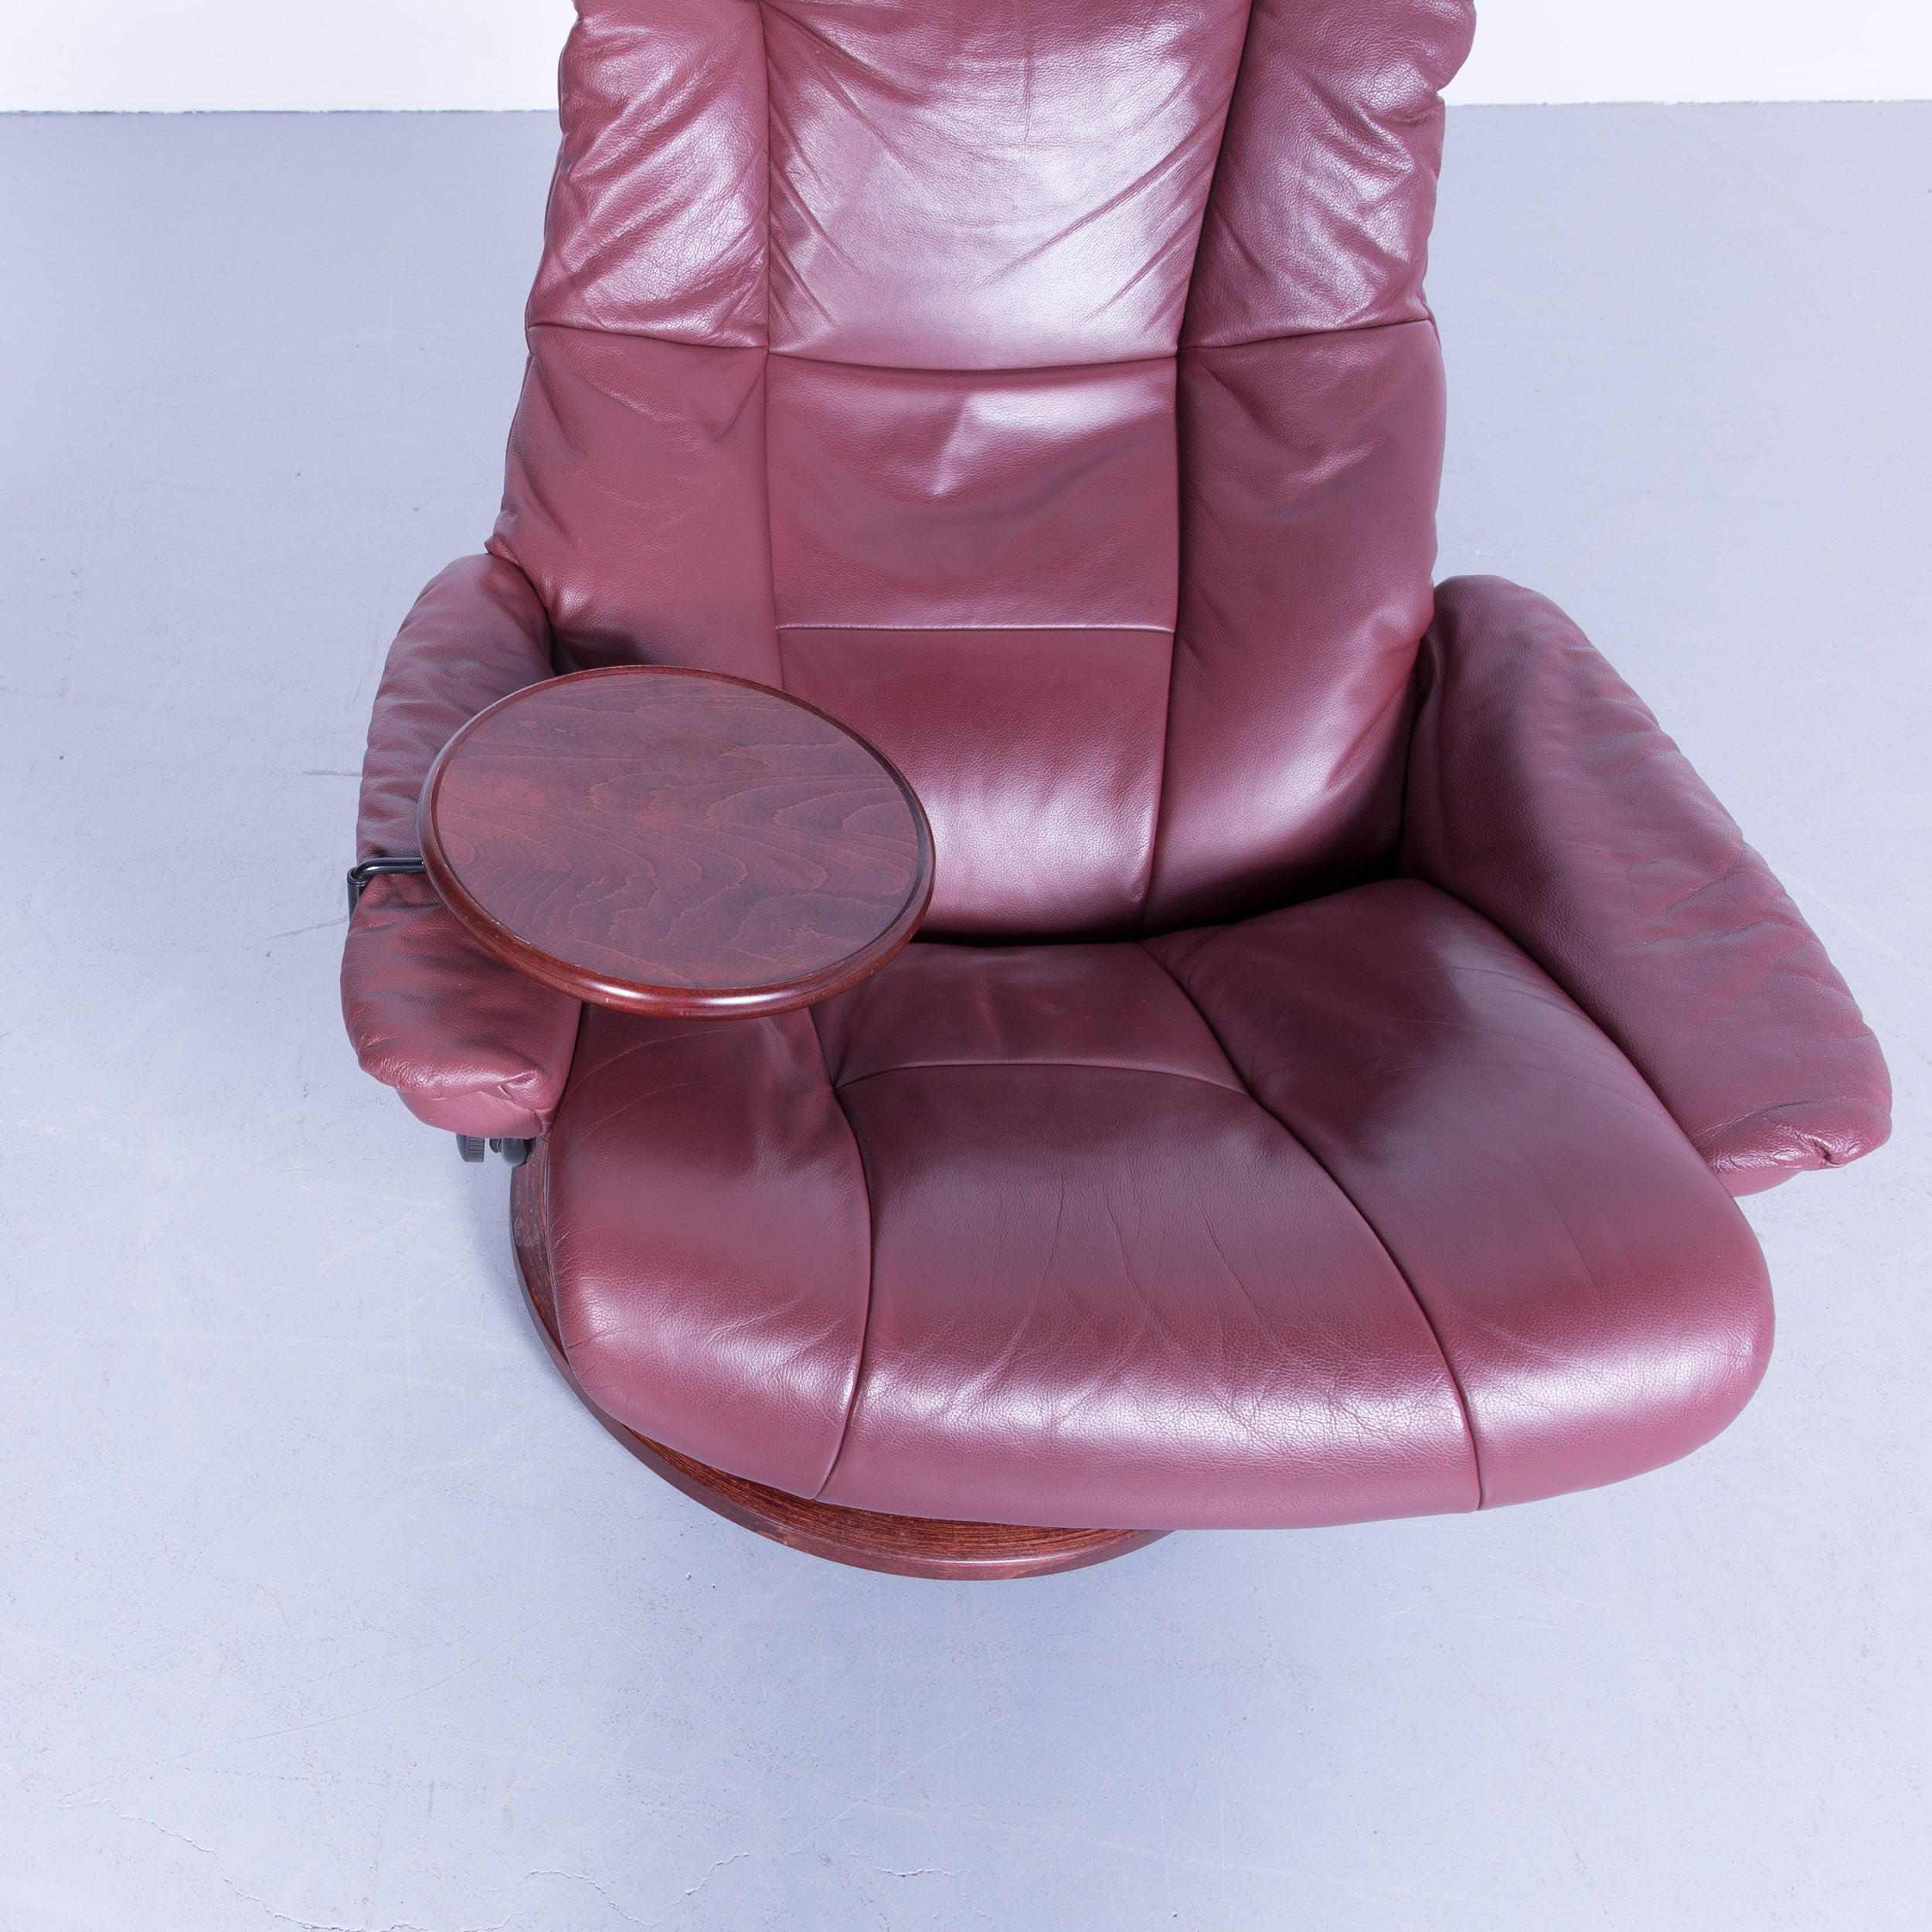 Stressless Sessel Inkl. Hocker Modell Sunrise (m) Classic Stressless Sessel Leder Rot